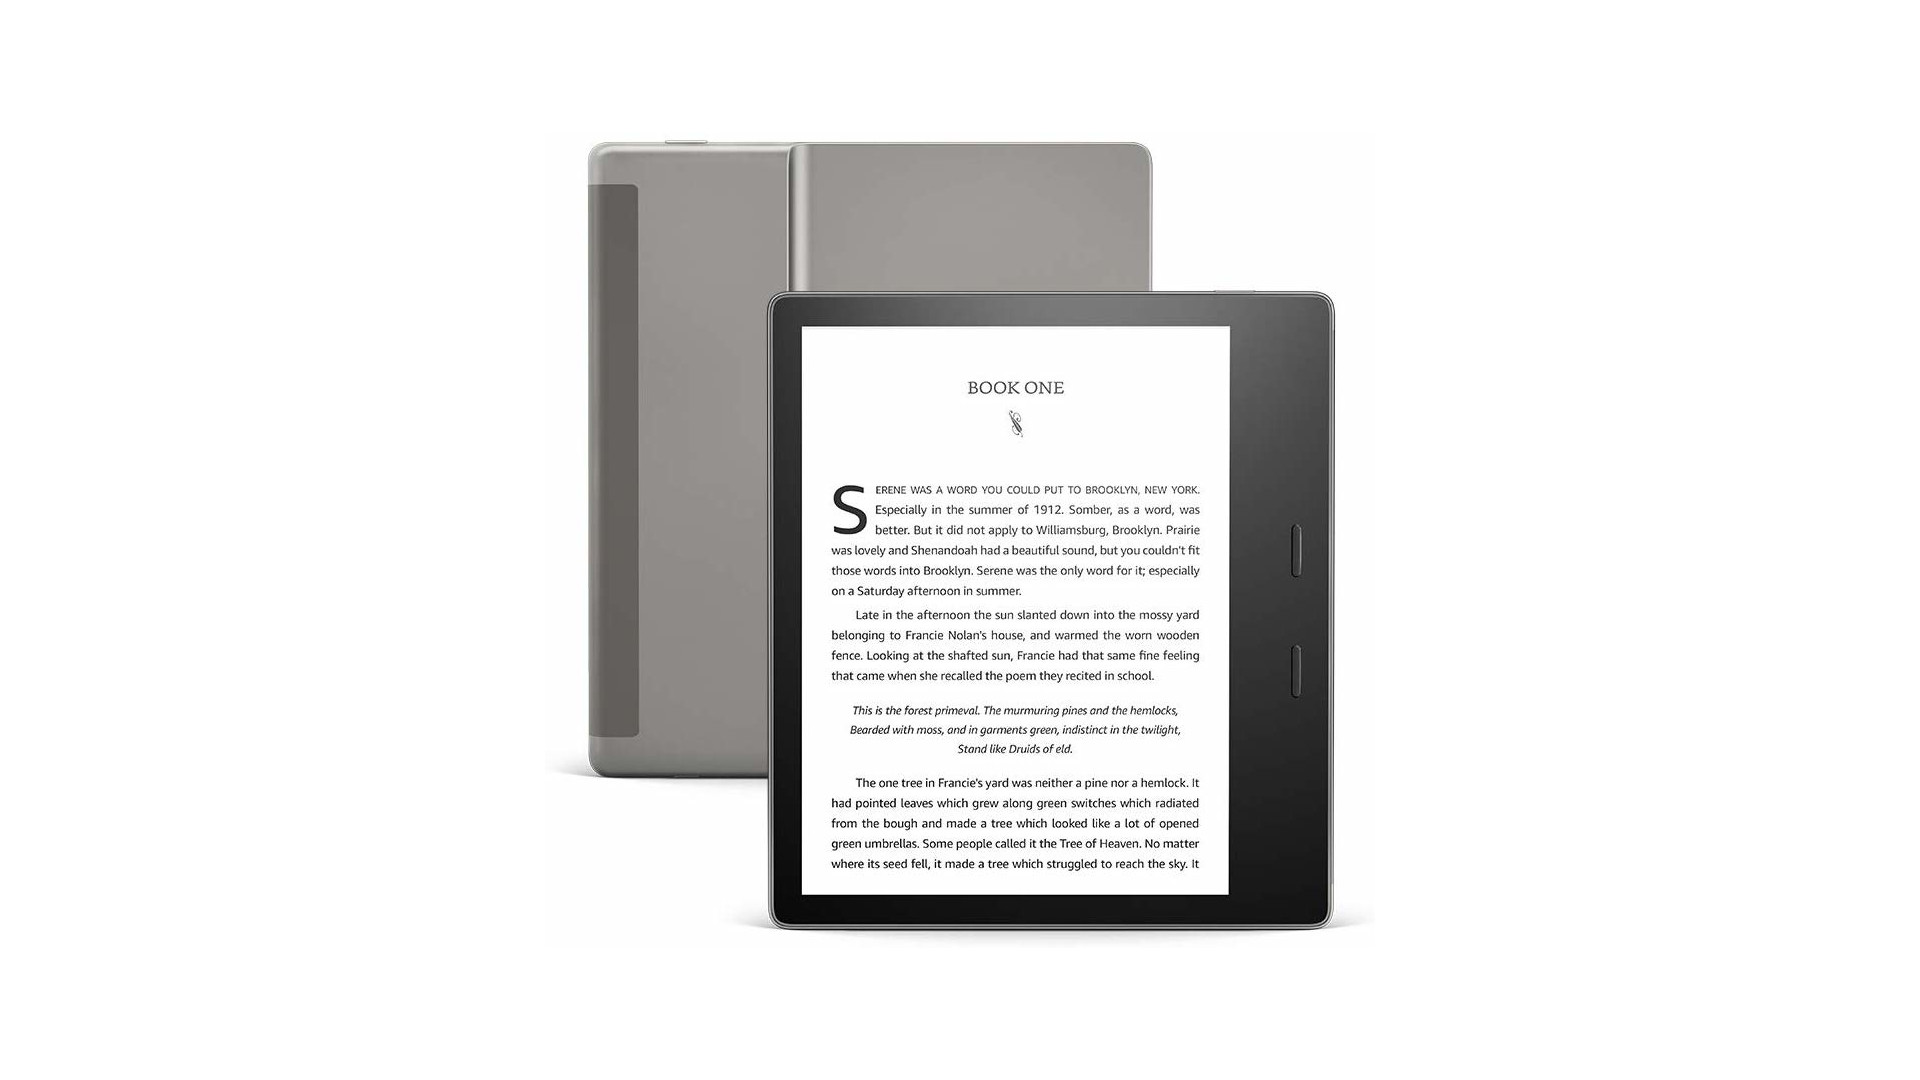 How To Download Free Books For Ebook Readers And Kindle